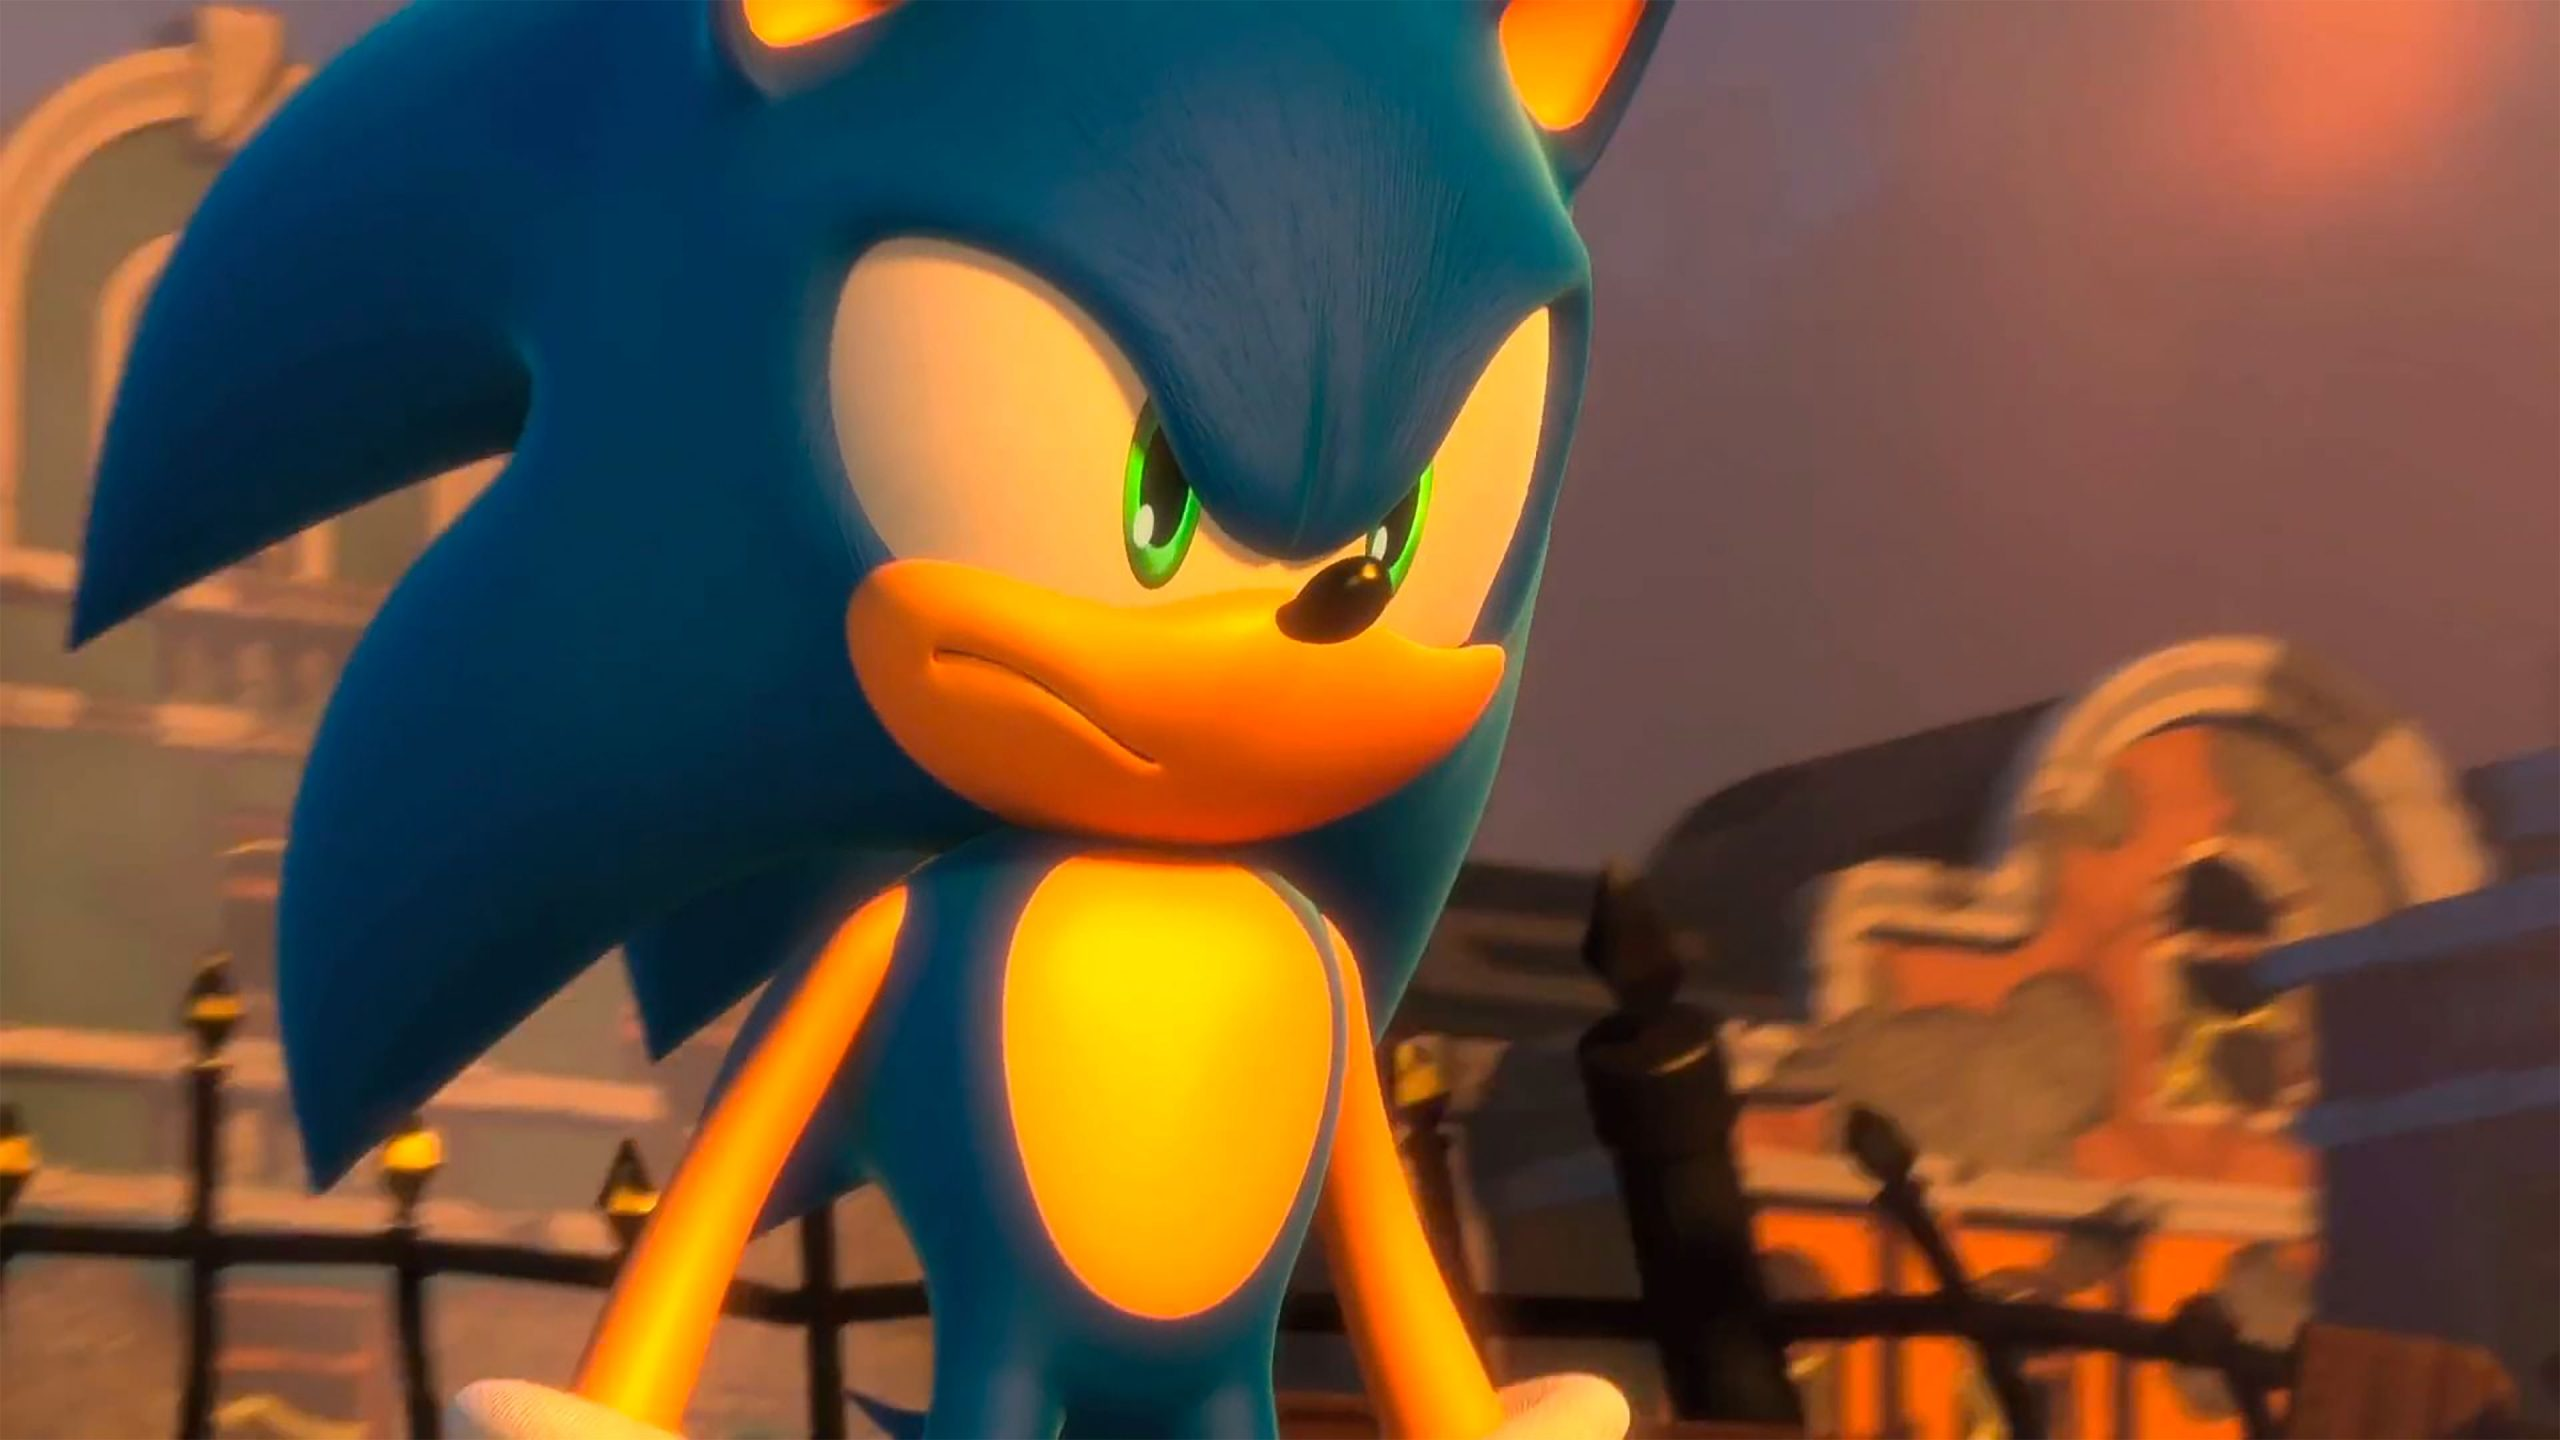 sonic forces wallpapers in ultra hd 4k